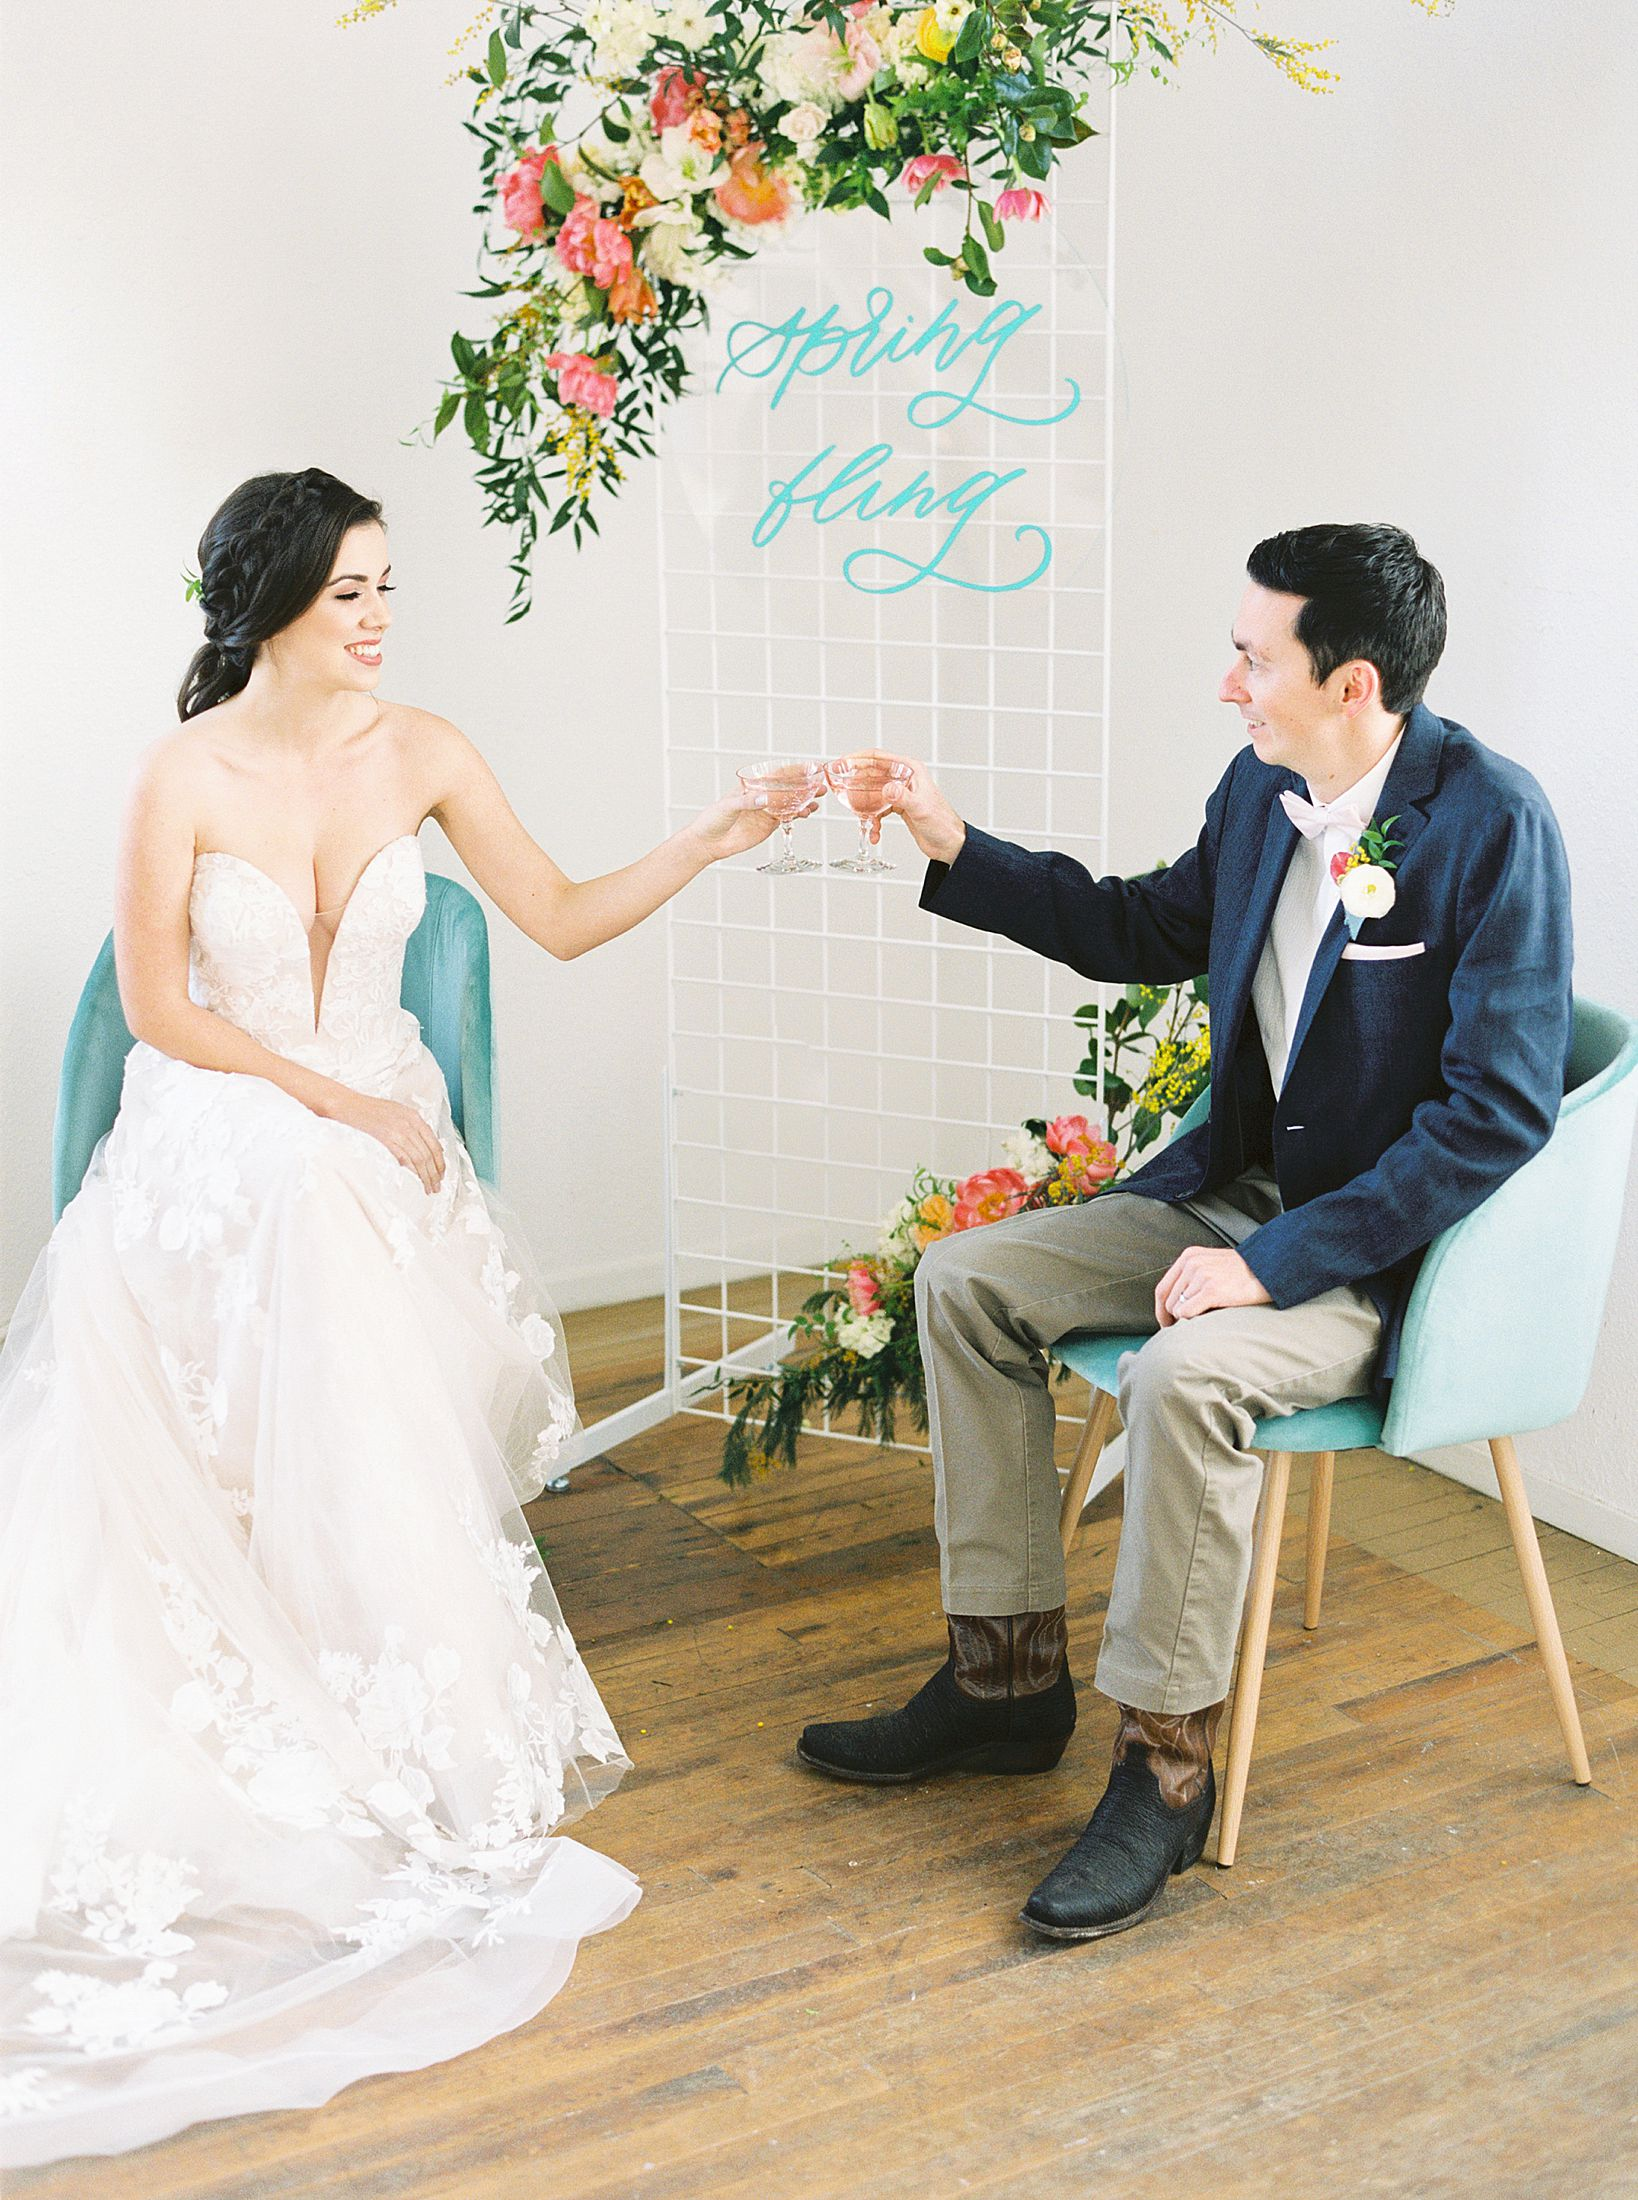 Bay Area Spring Wedding Inspiration - Ashley Baumgartner - Inspired By This - Party Crush Studio and Lens of Lenox Videography - Bay Area Wedding Photography_0032.jpg